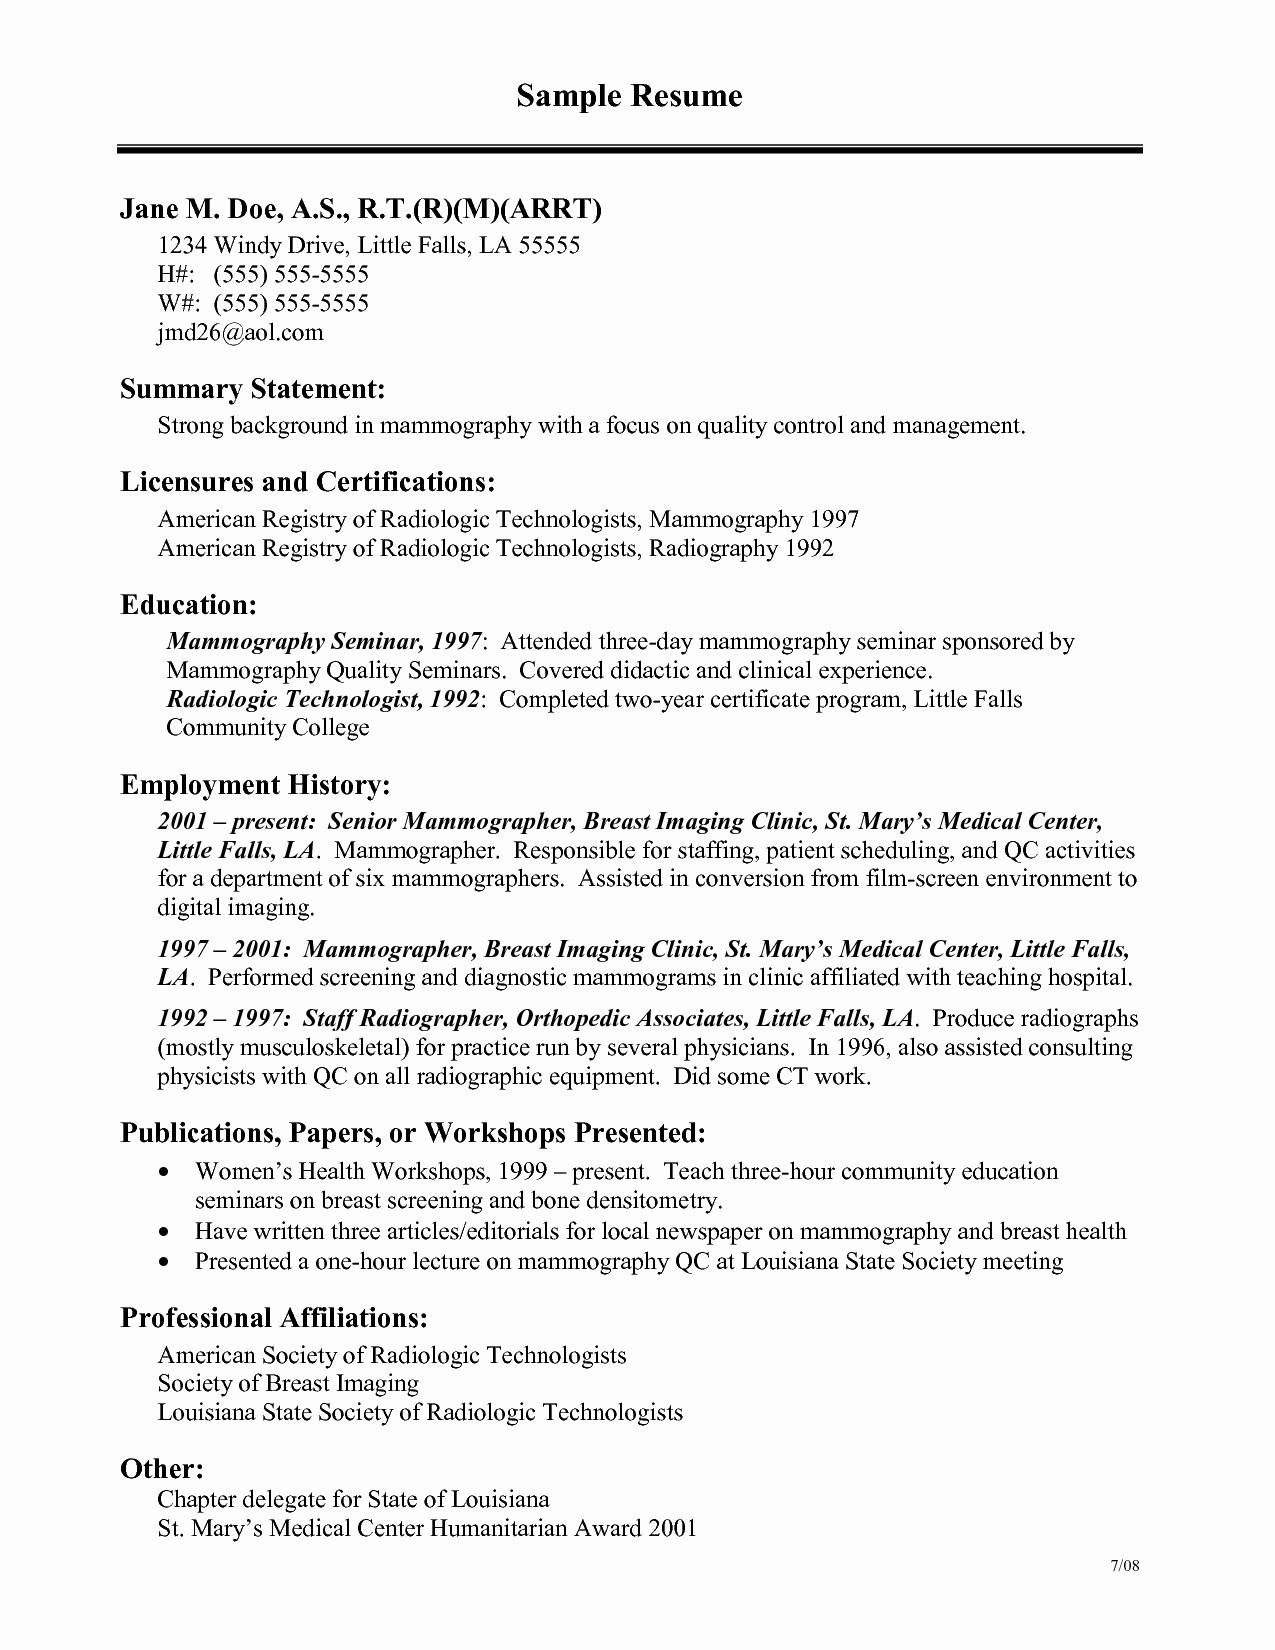 Resume for Dialysis Technician - Valid Resume Samples Veterinary Technician